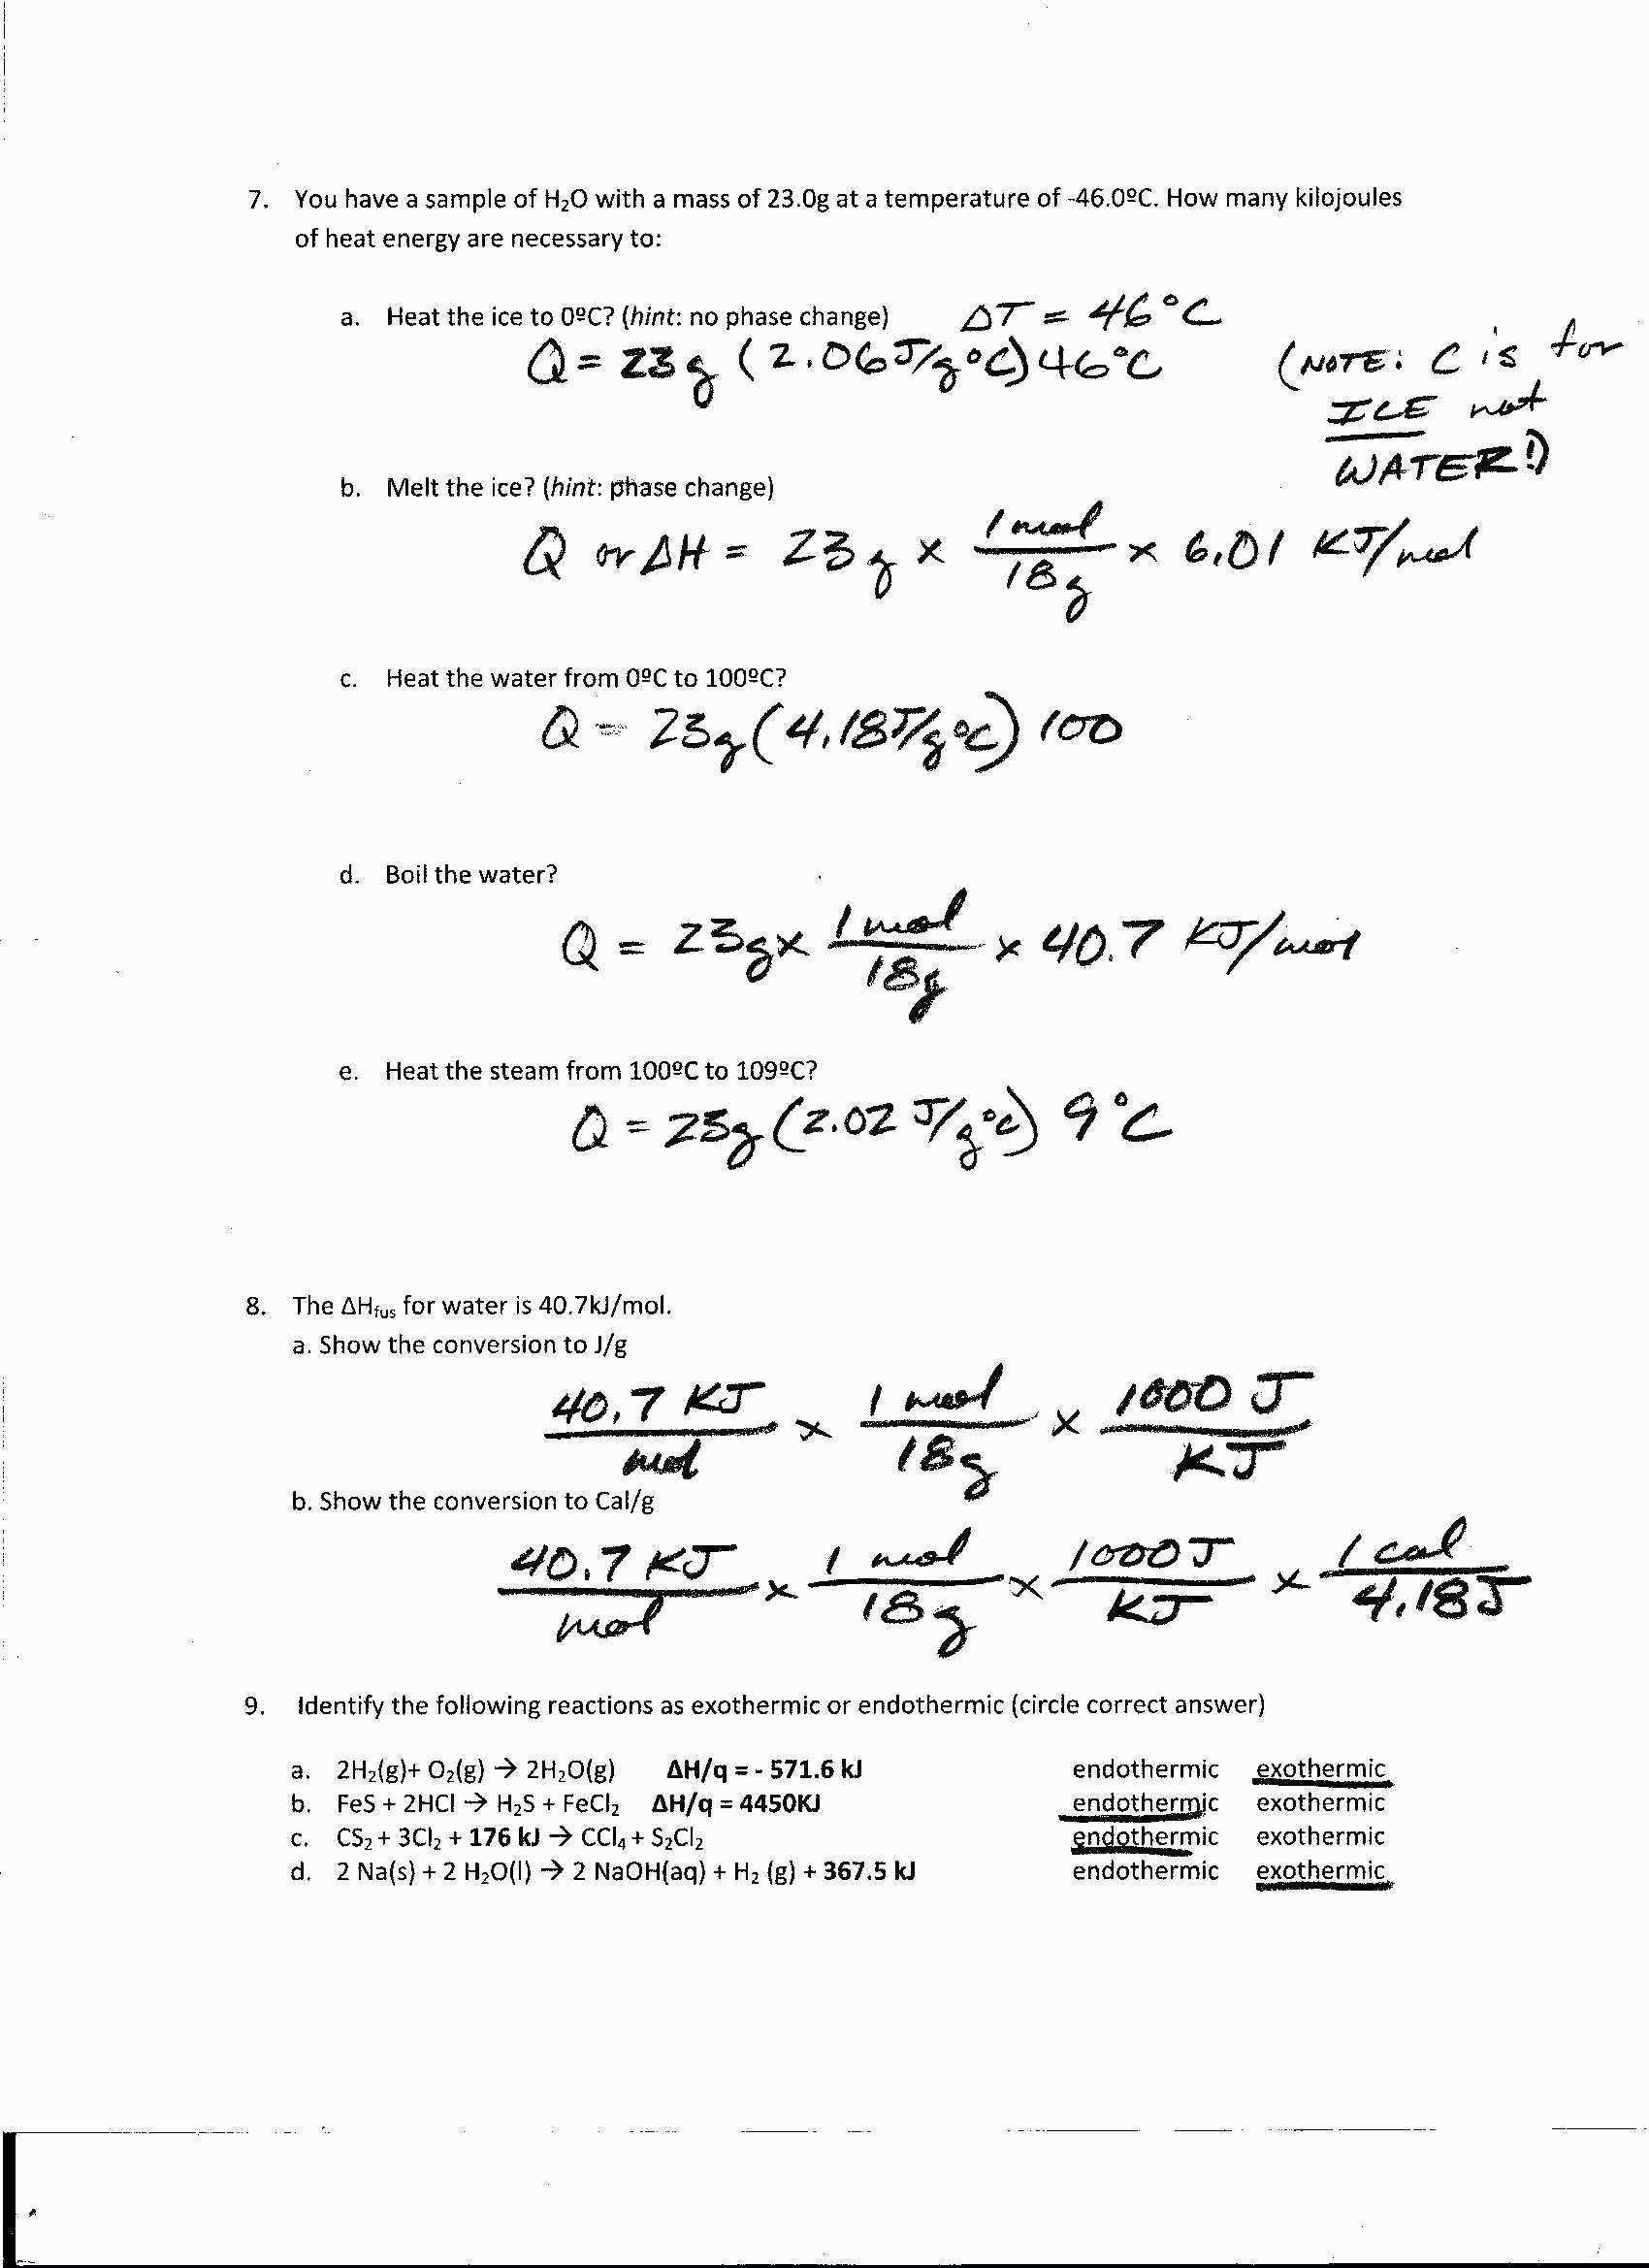 Heat Transfer Worksheet Pdf together with Heat Transfer Worksheet Answers Choice Image Worksheet for Kids